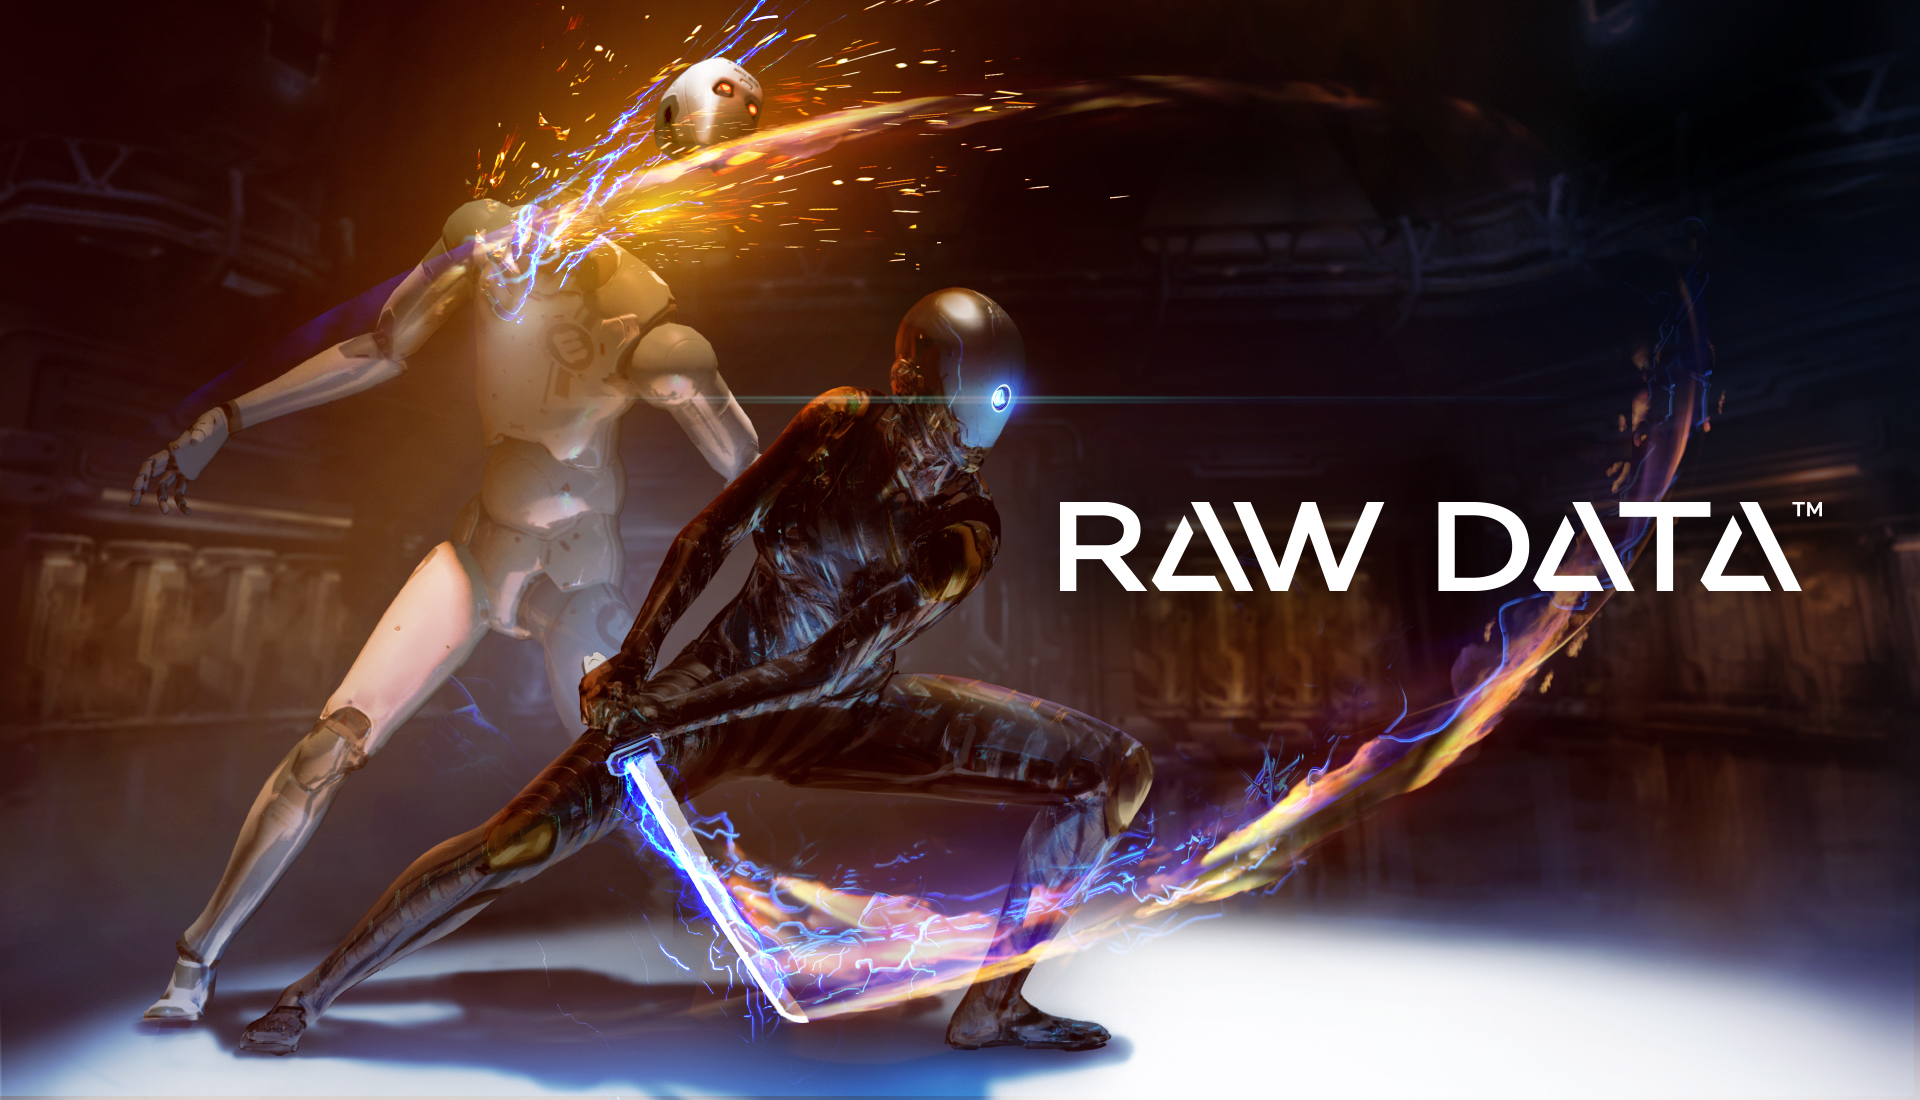 GDC 2016: Raw Data takes VR cooperative